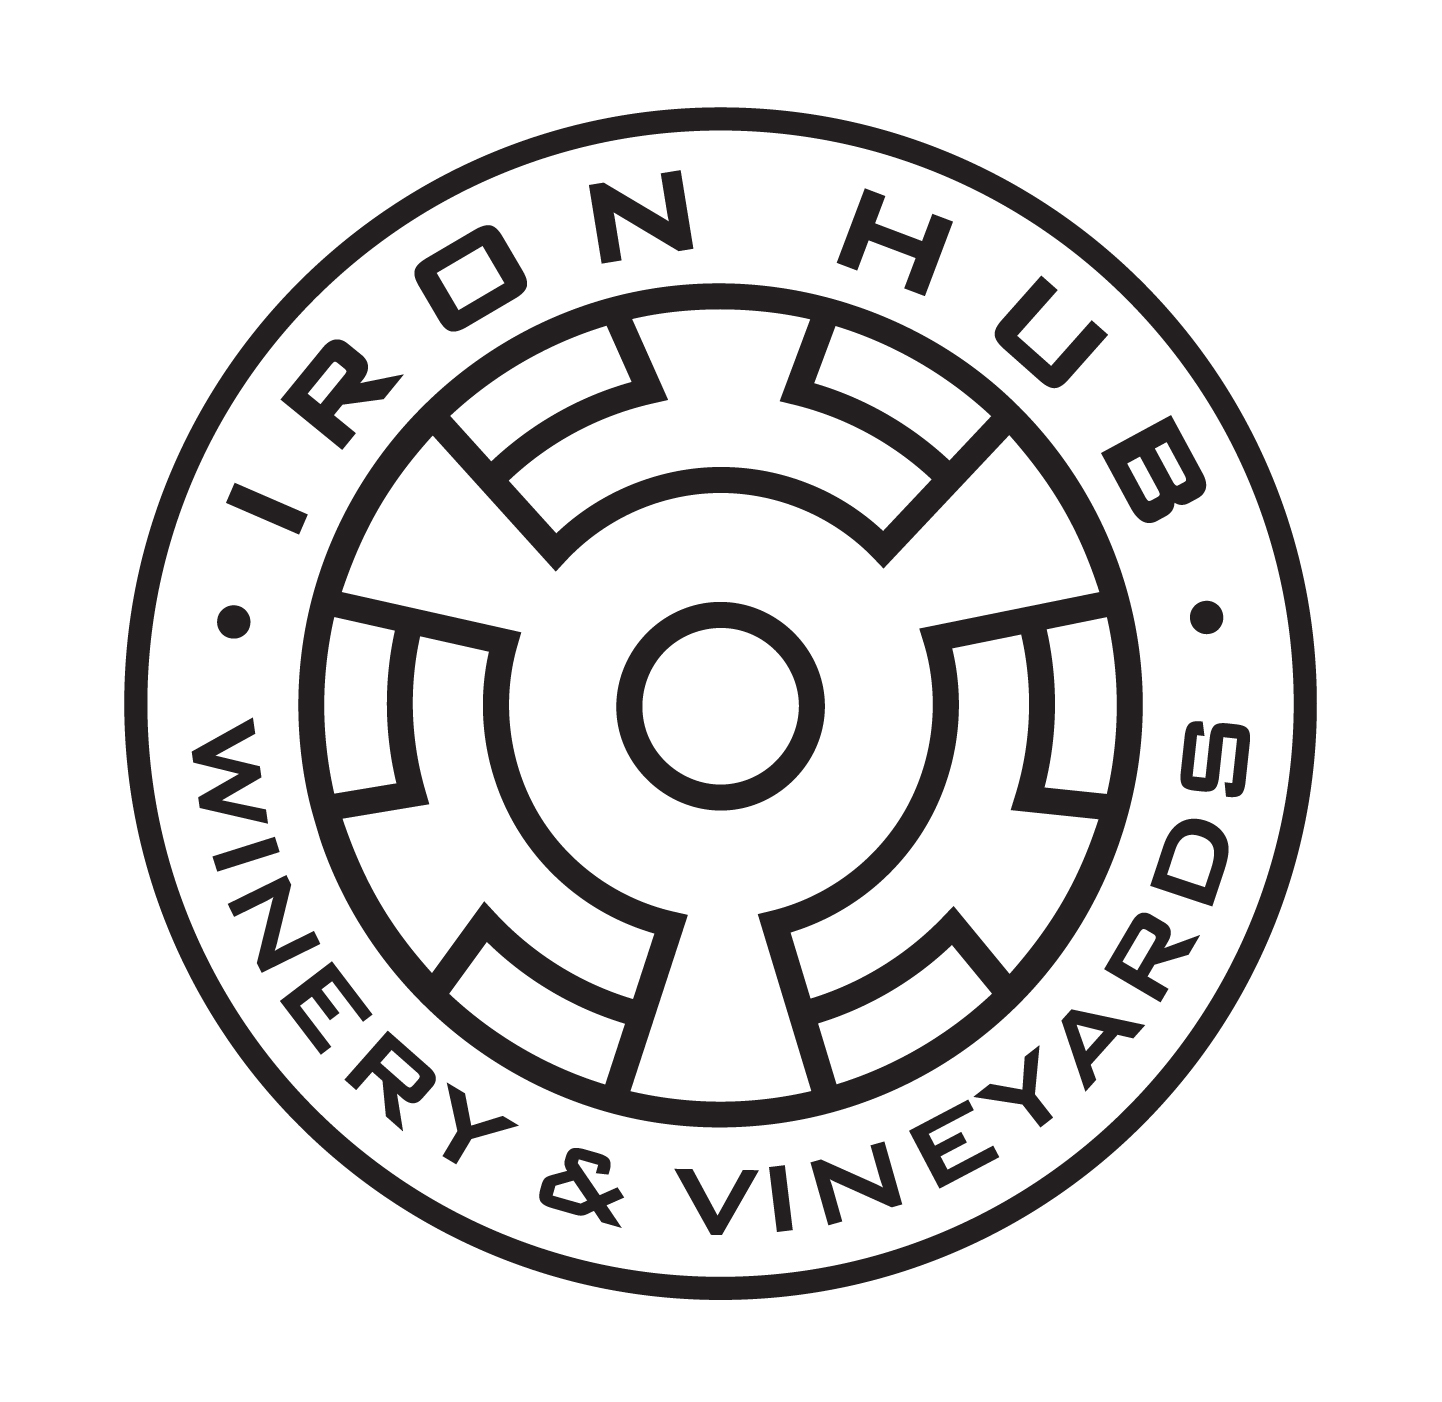 Iron Hub Winery & Vineyards